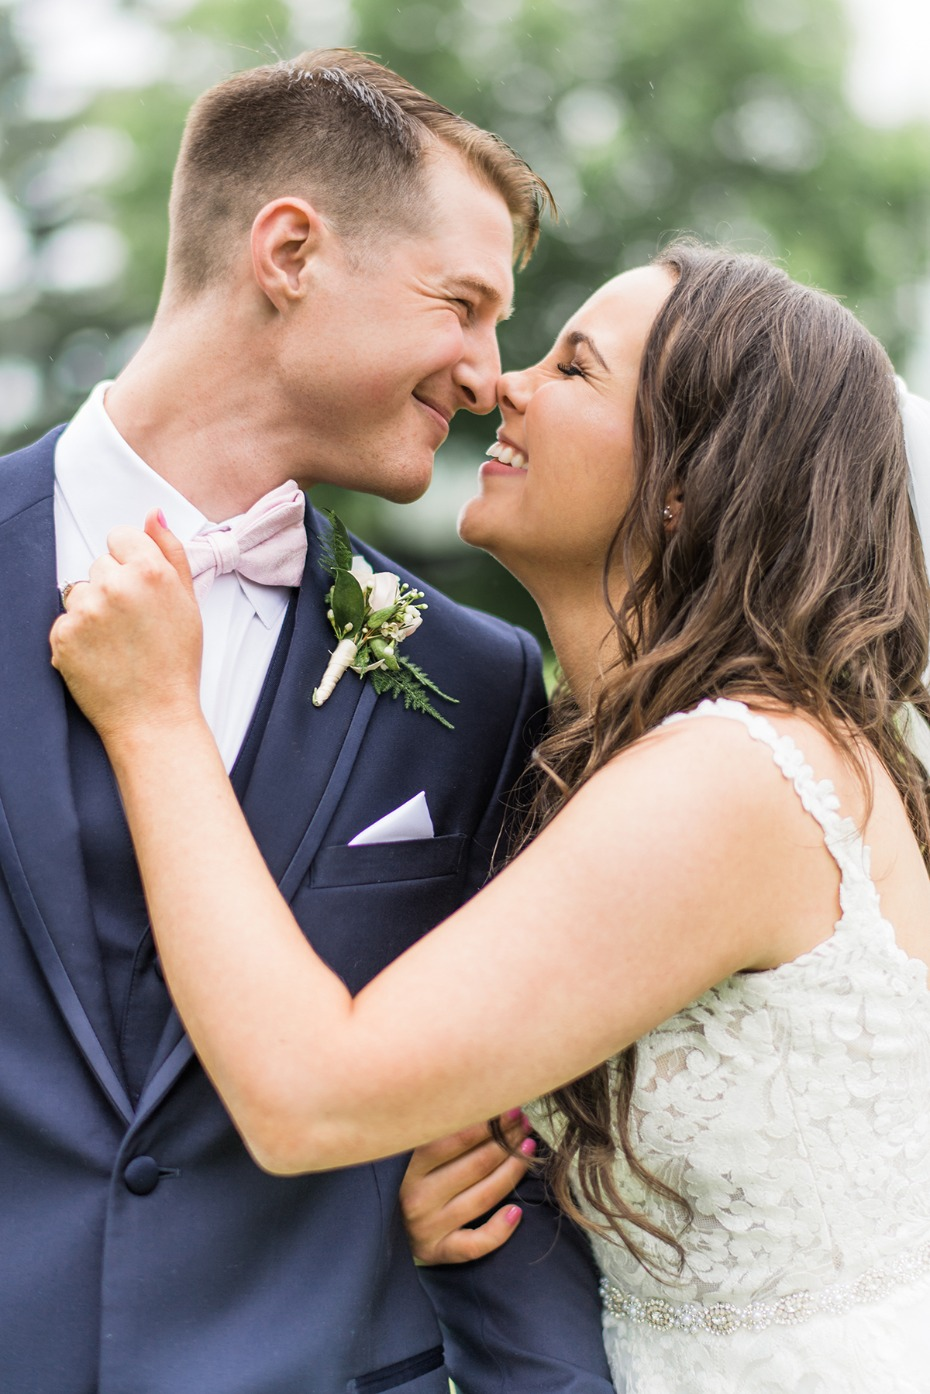 adorable wedding couple in love